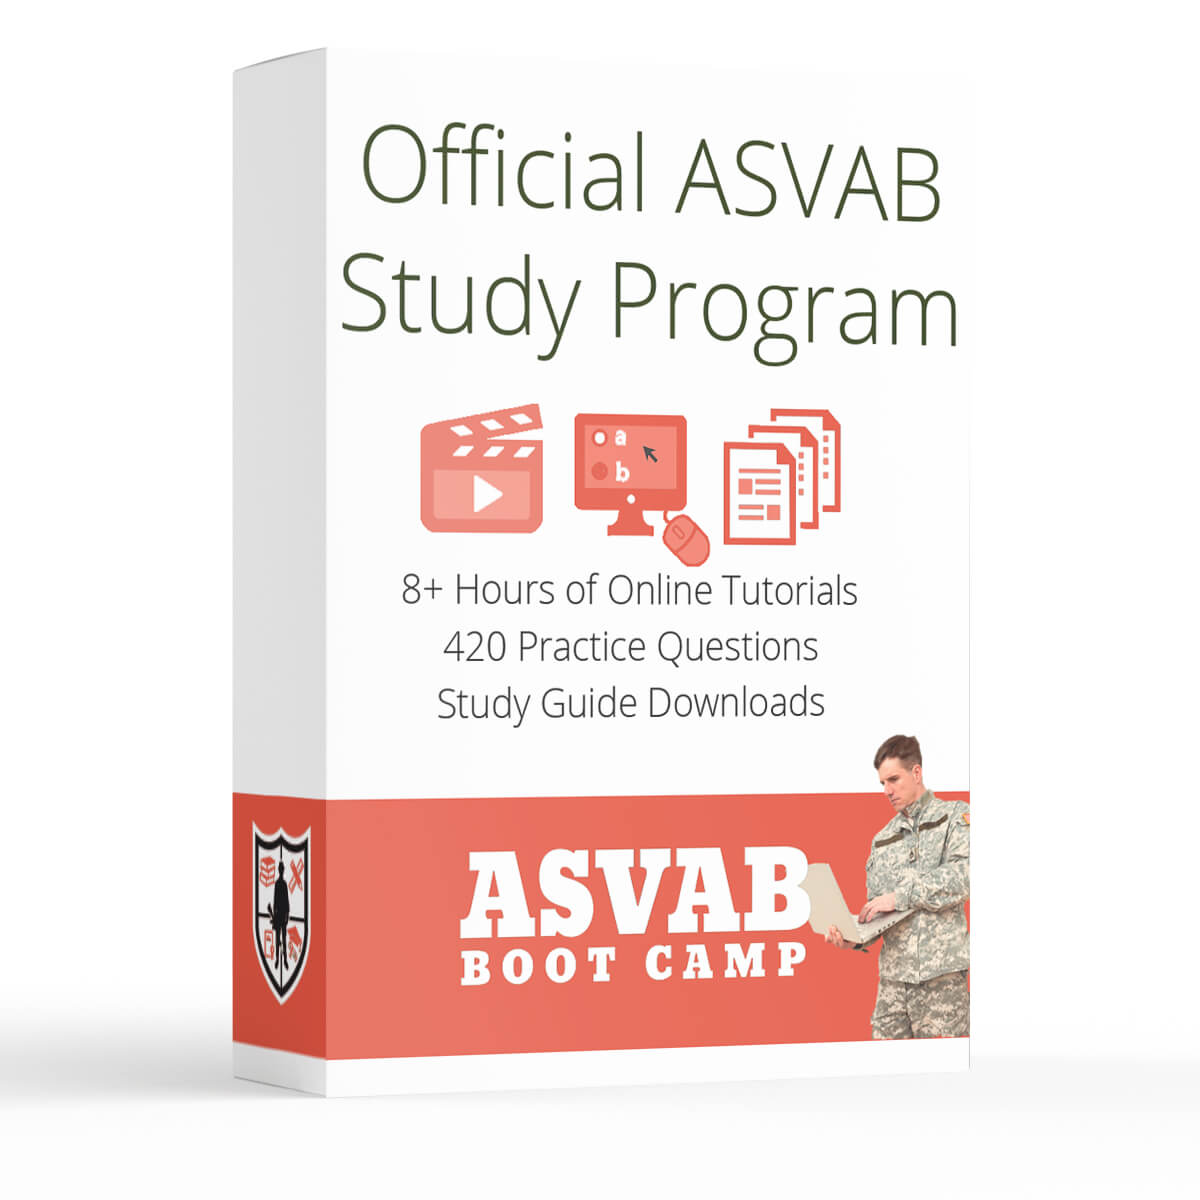 Official ASVAB Study Program